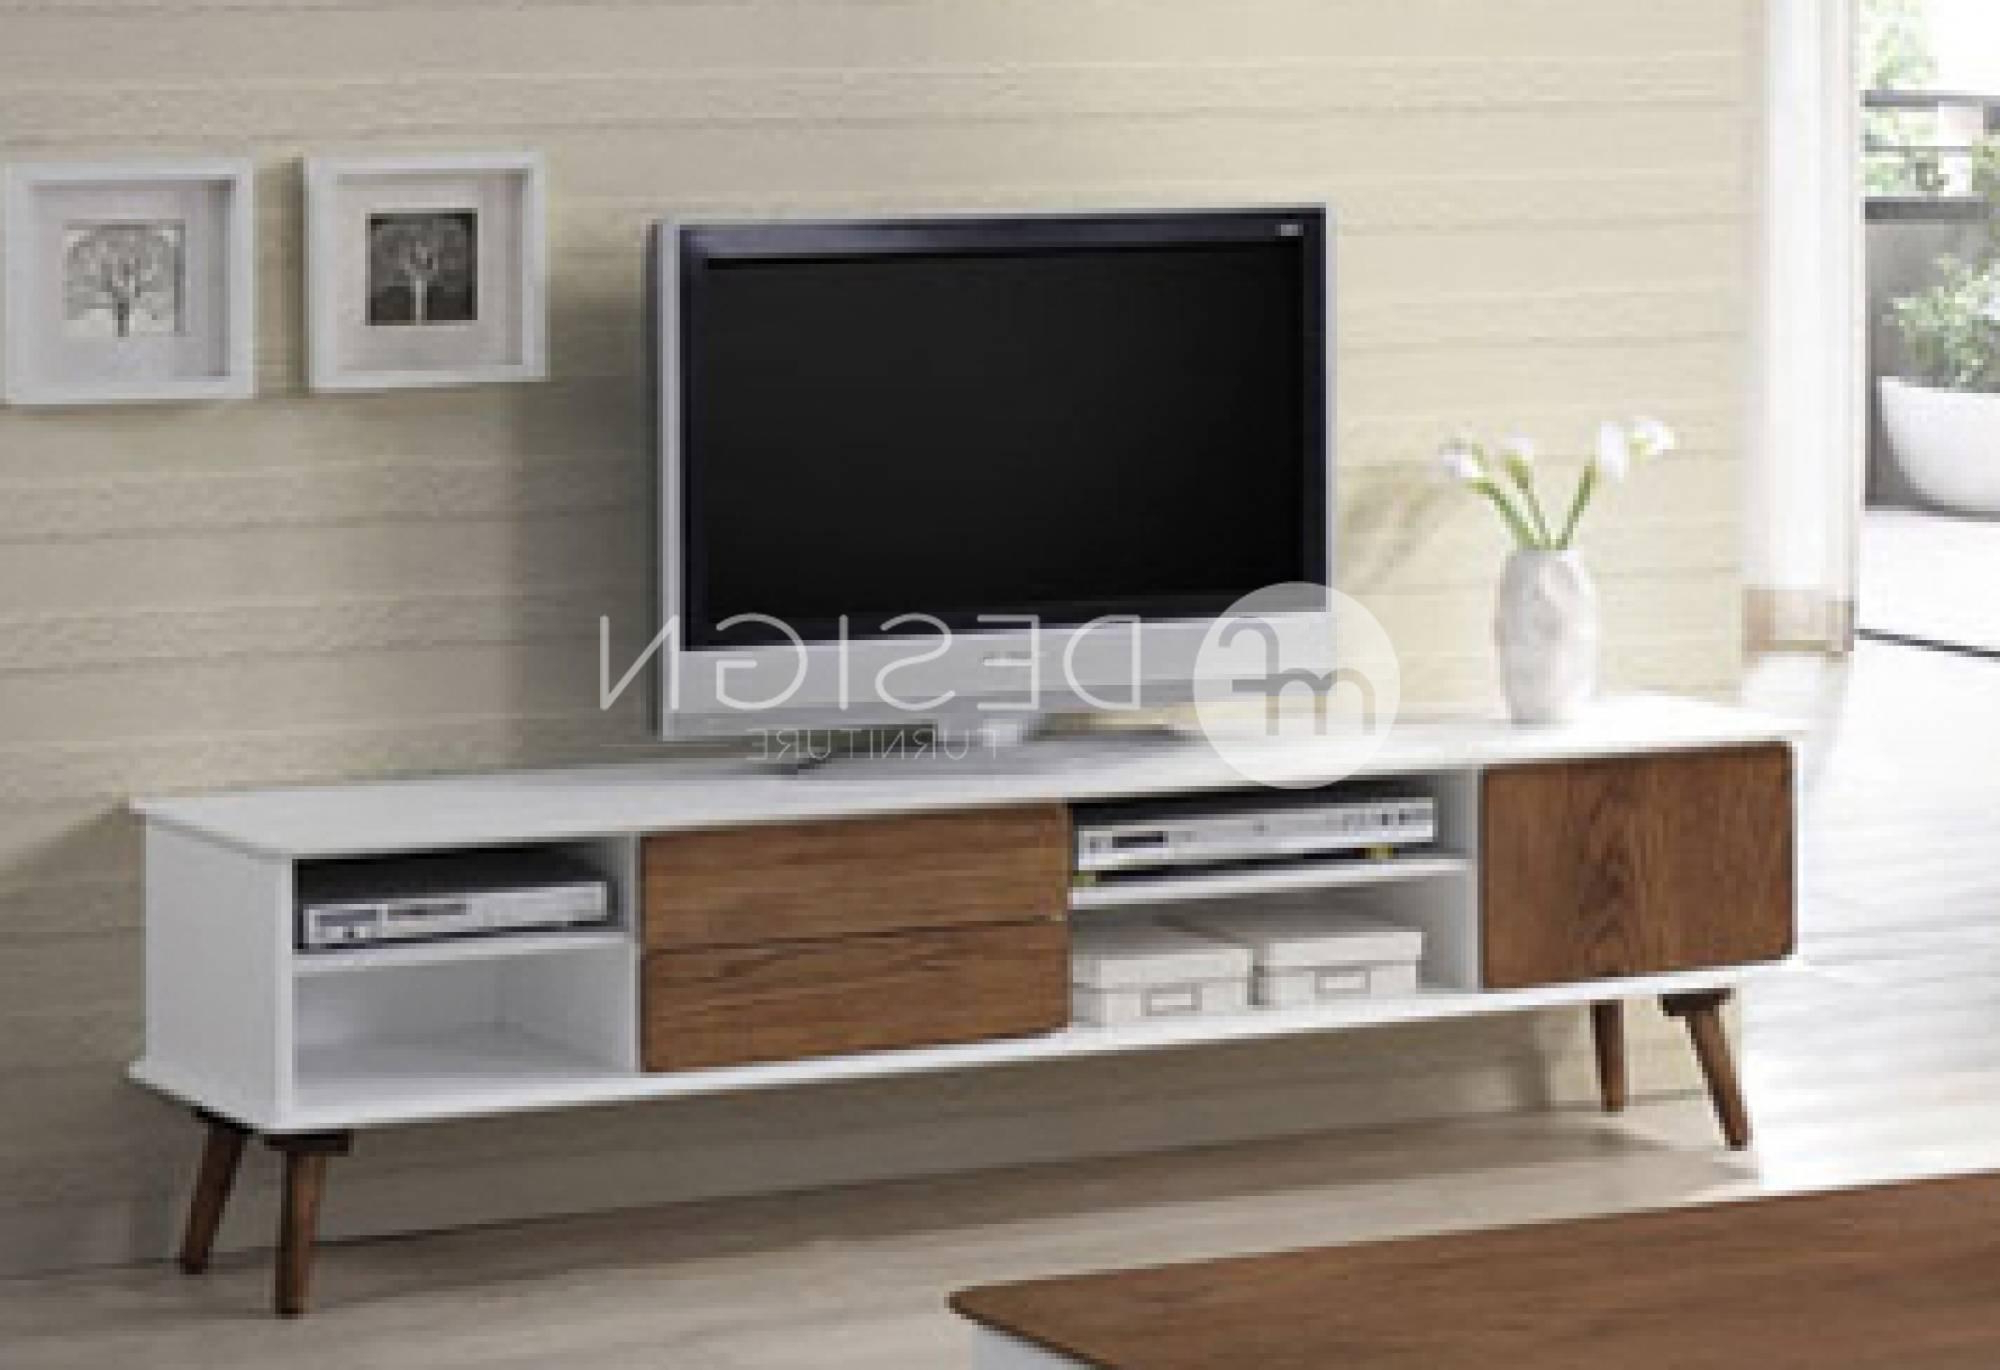 Current Mf Design Modenos Tv Cabinet (Scand (End 5/27/2019 12:33 Pm) With Scandinavian Design Tv Cabinets (View 2 of 20)